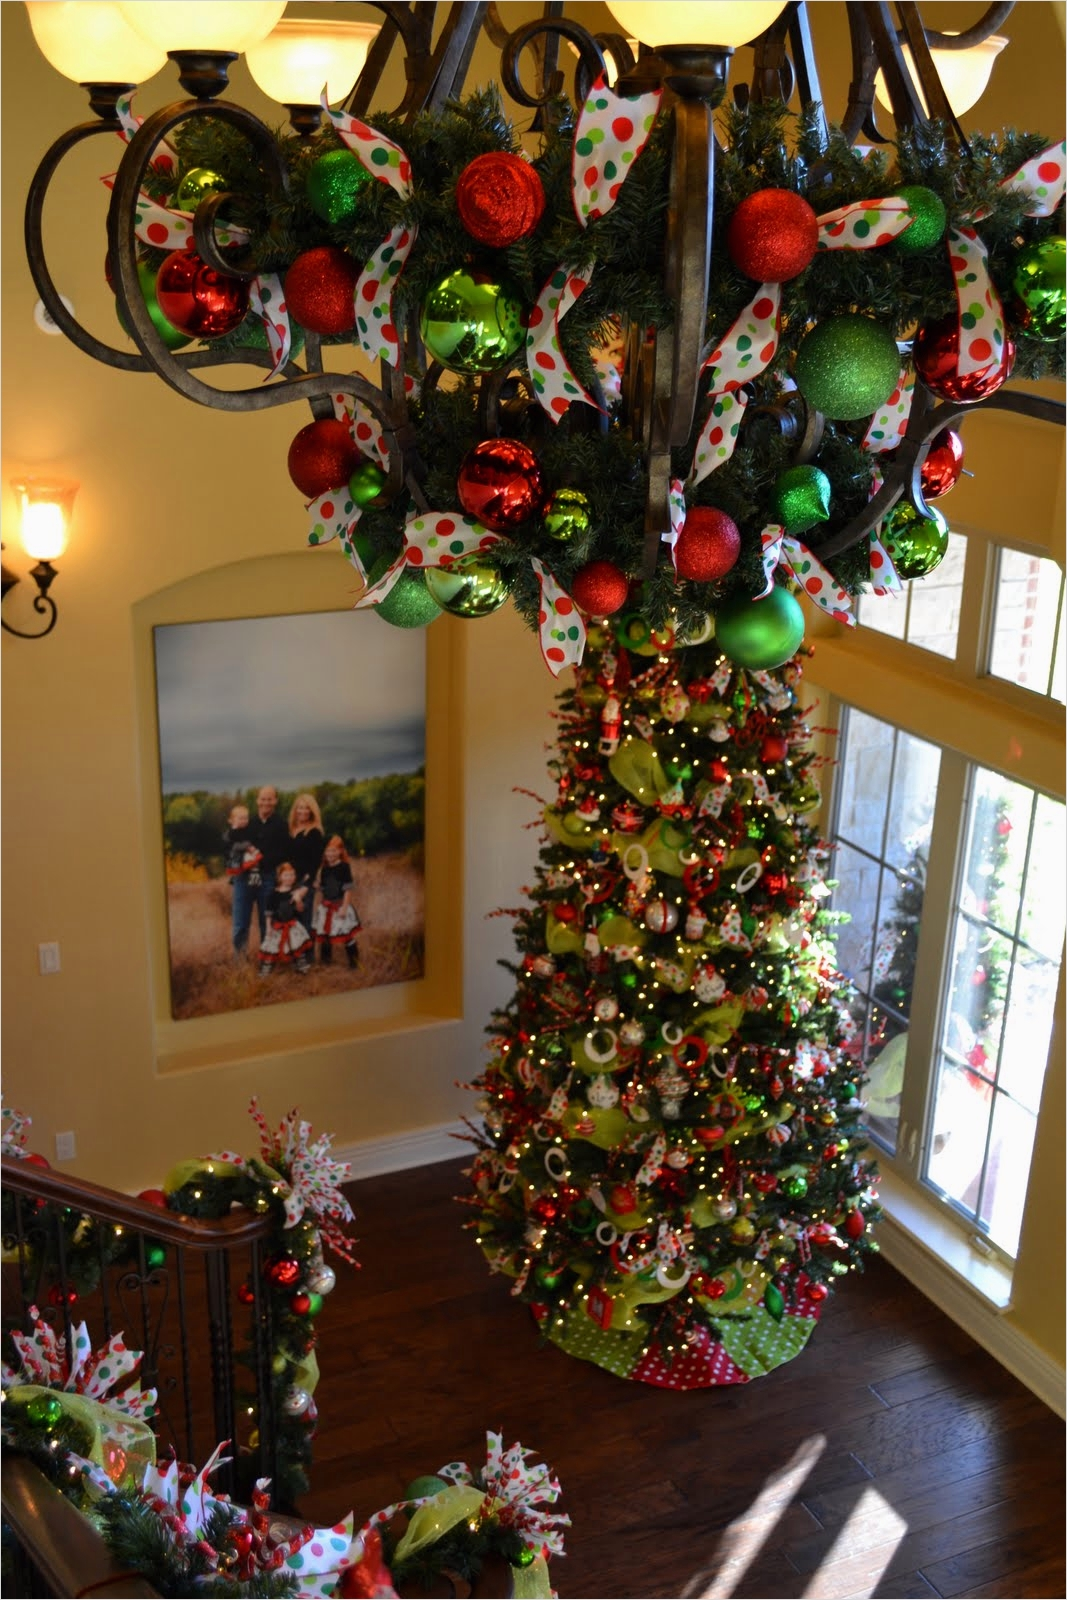 41 Awesome Whimsical Christmas Tree Decorating Ideas 19 Kristen S Creations A Whimsical Christmas 5